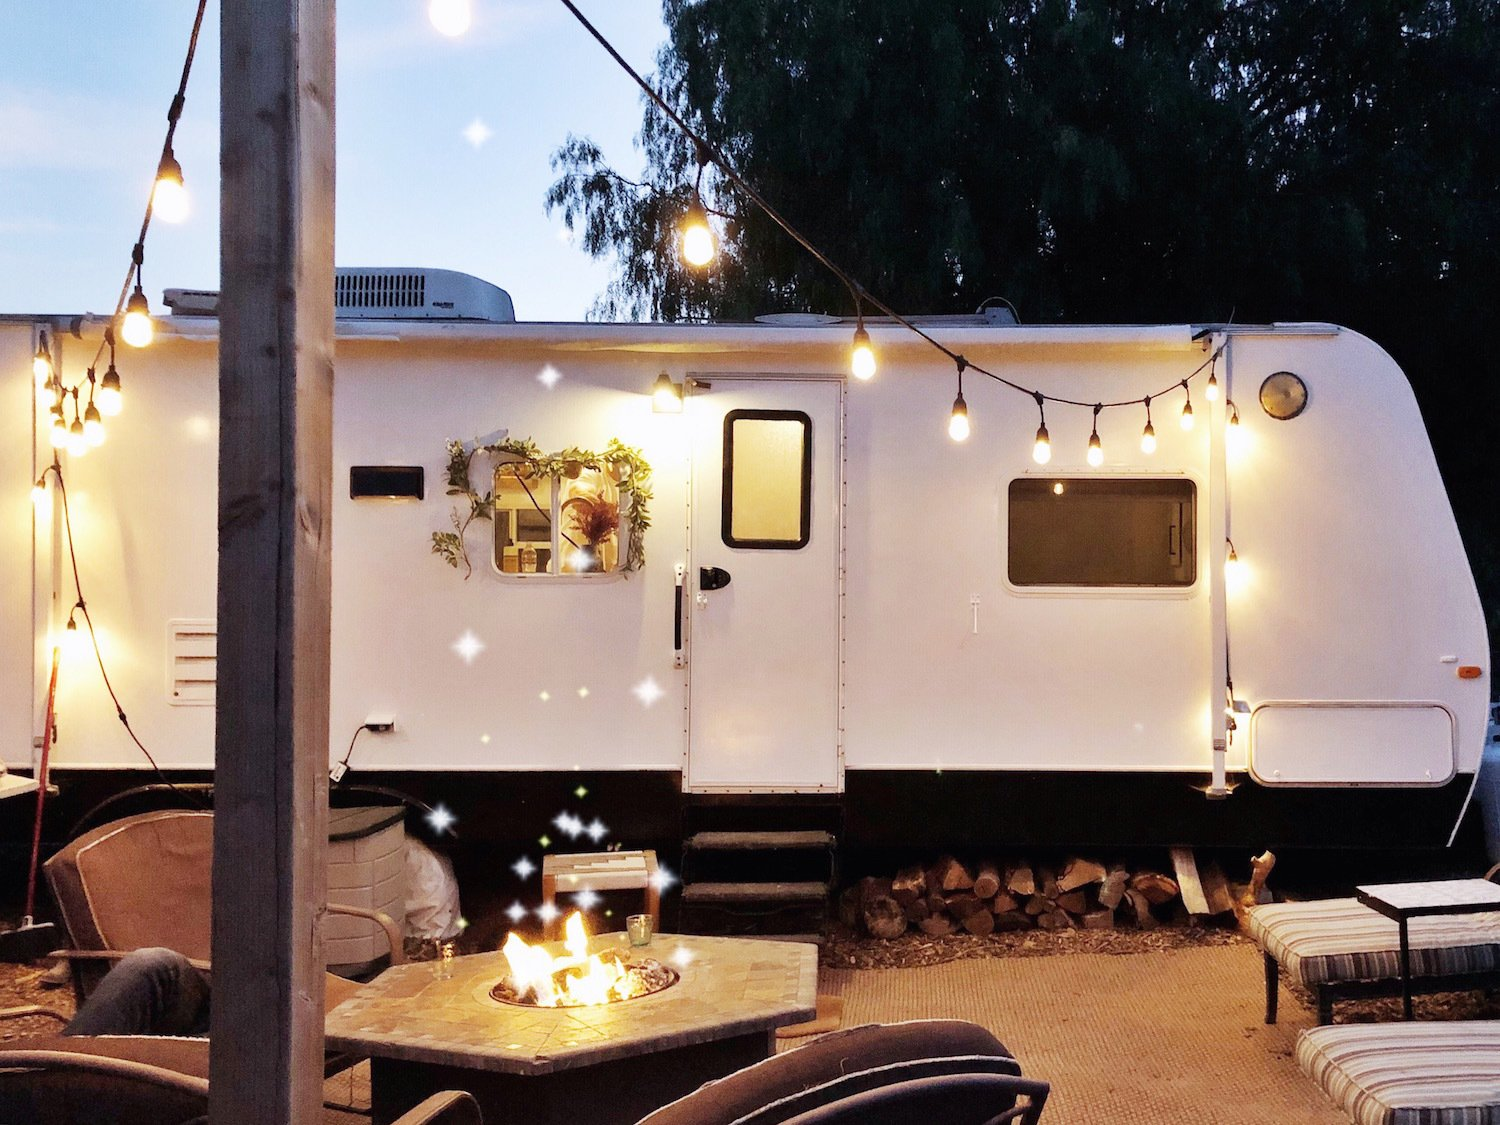 The 180-square-foot RV is currently parked on their lot in Ventura, California.